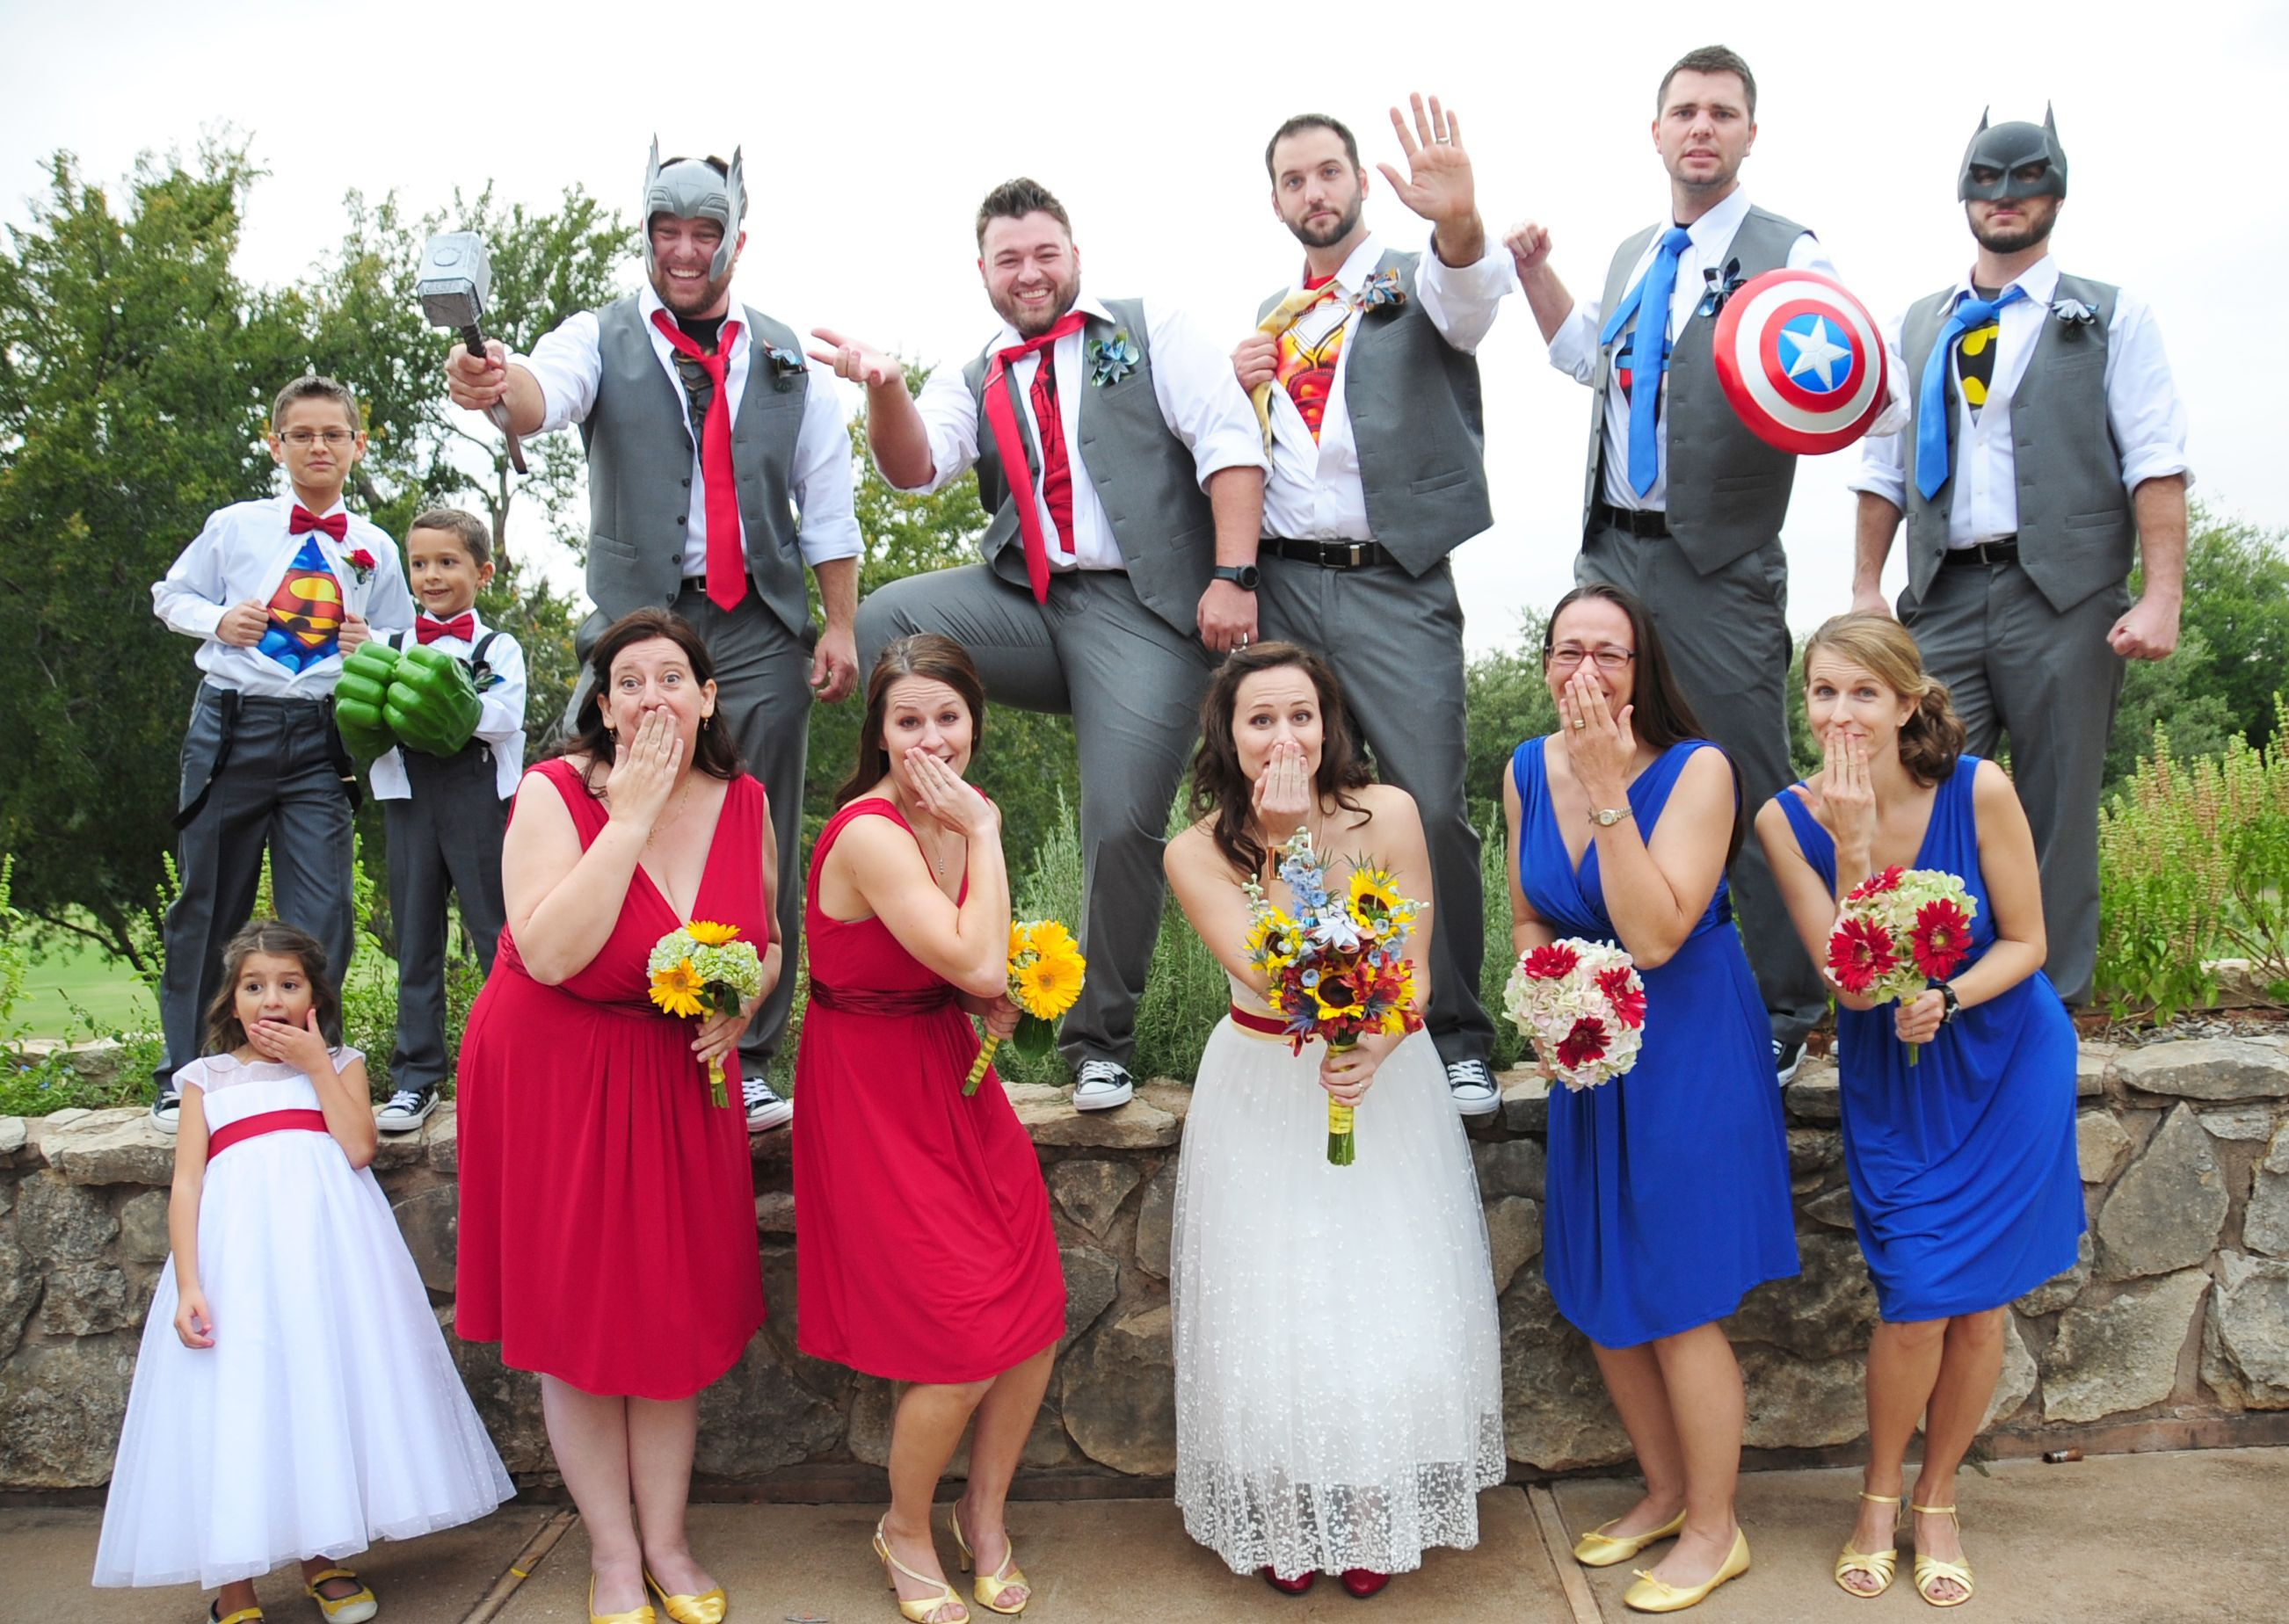 captain america wedding band Superhero wedding party with props Everyone had so much fun The Hulk Thor